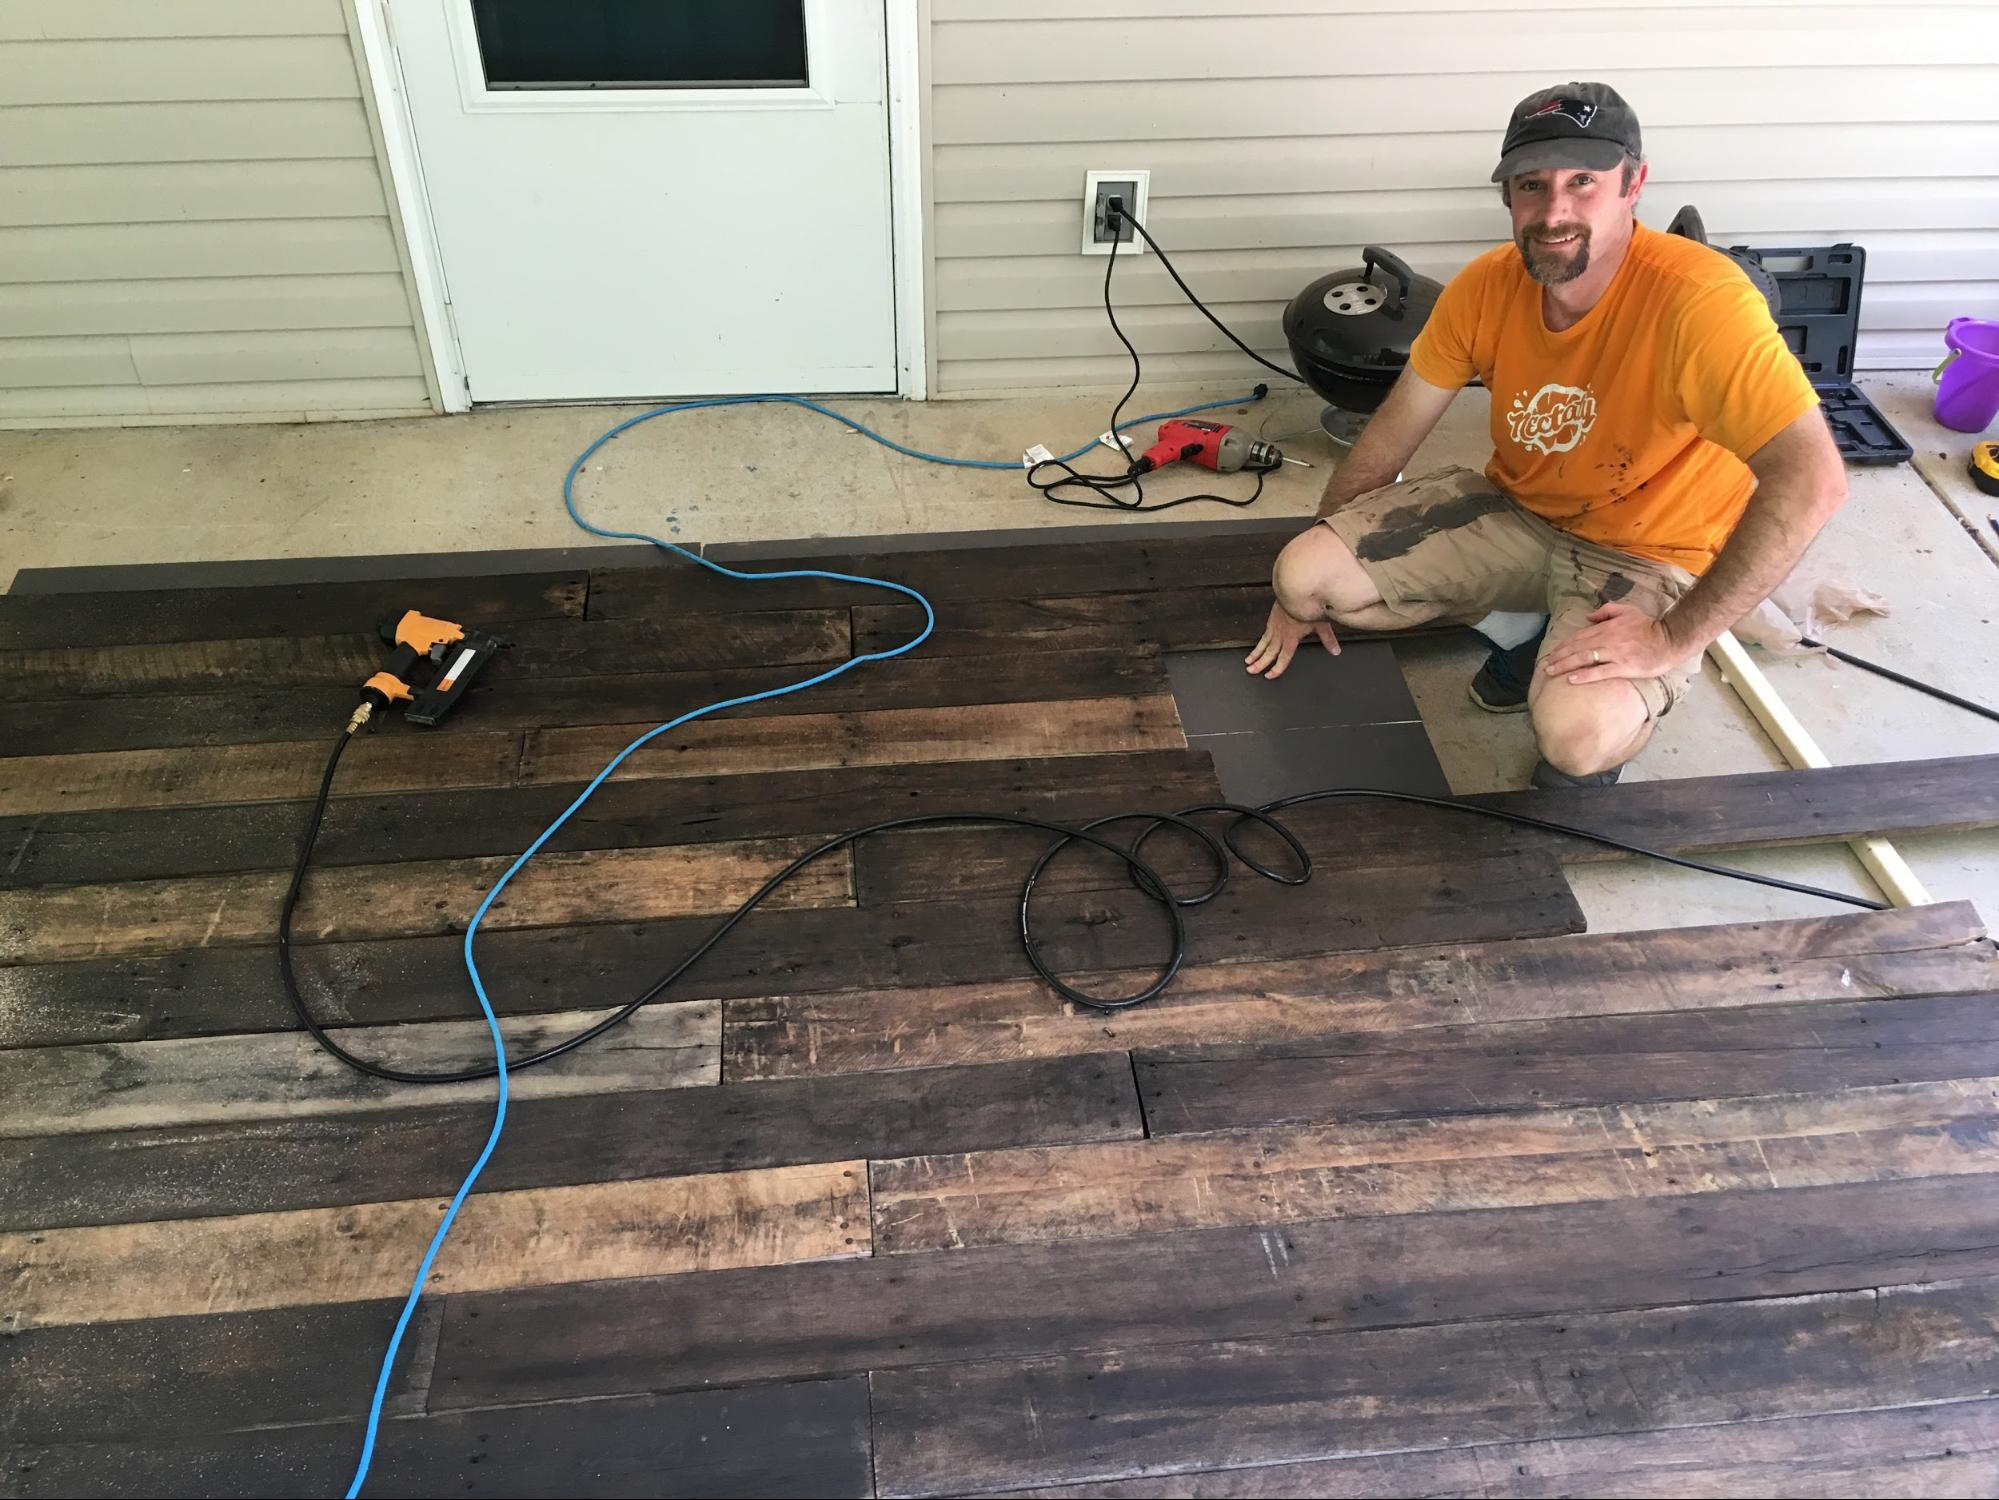 How to build wood wall background for home office - Anyvoo - Securing boards to plywood with brad nailer